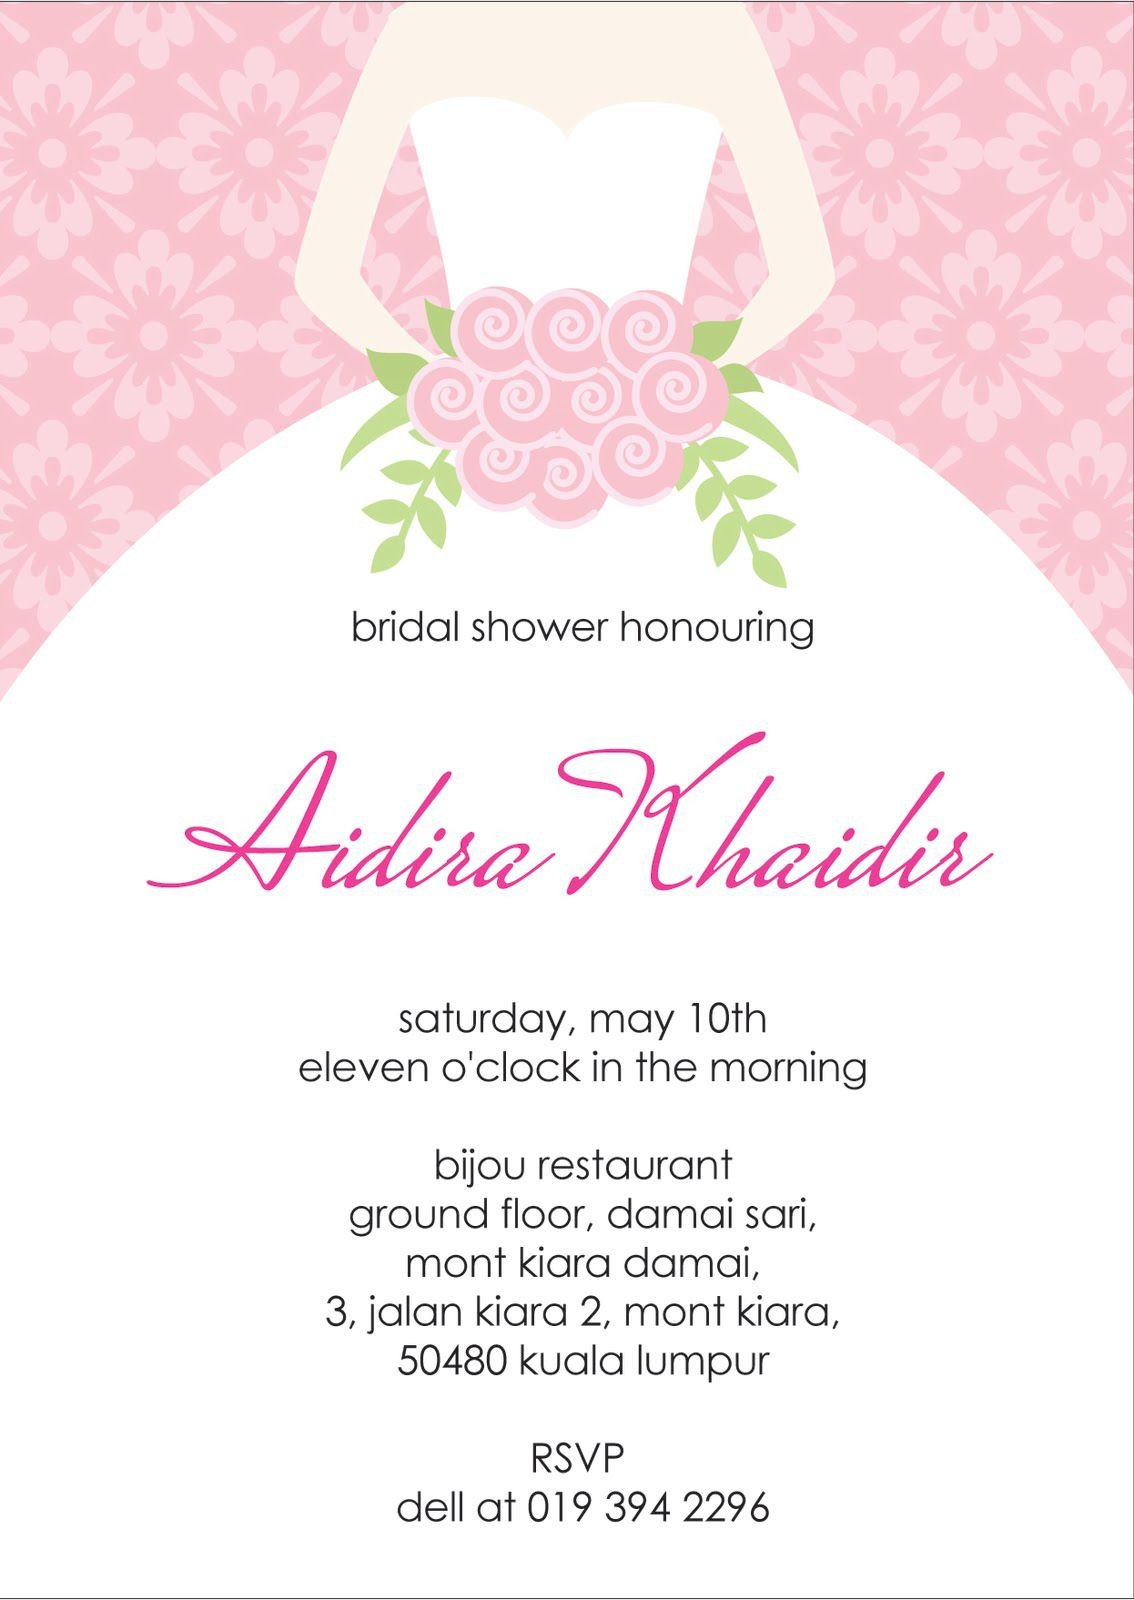 Wedding Shower Invitation Templates Bridal Shower Invitation Verbiage Bridal Shower